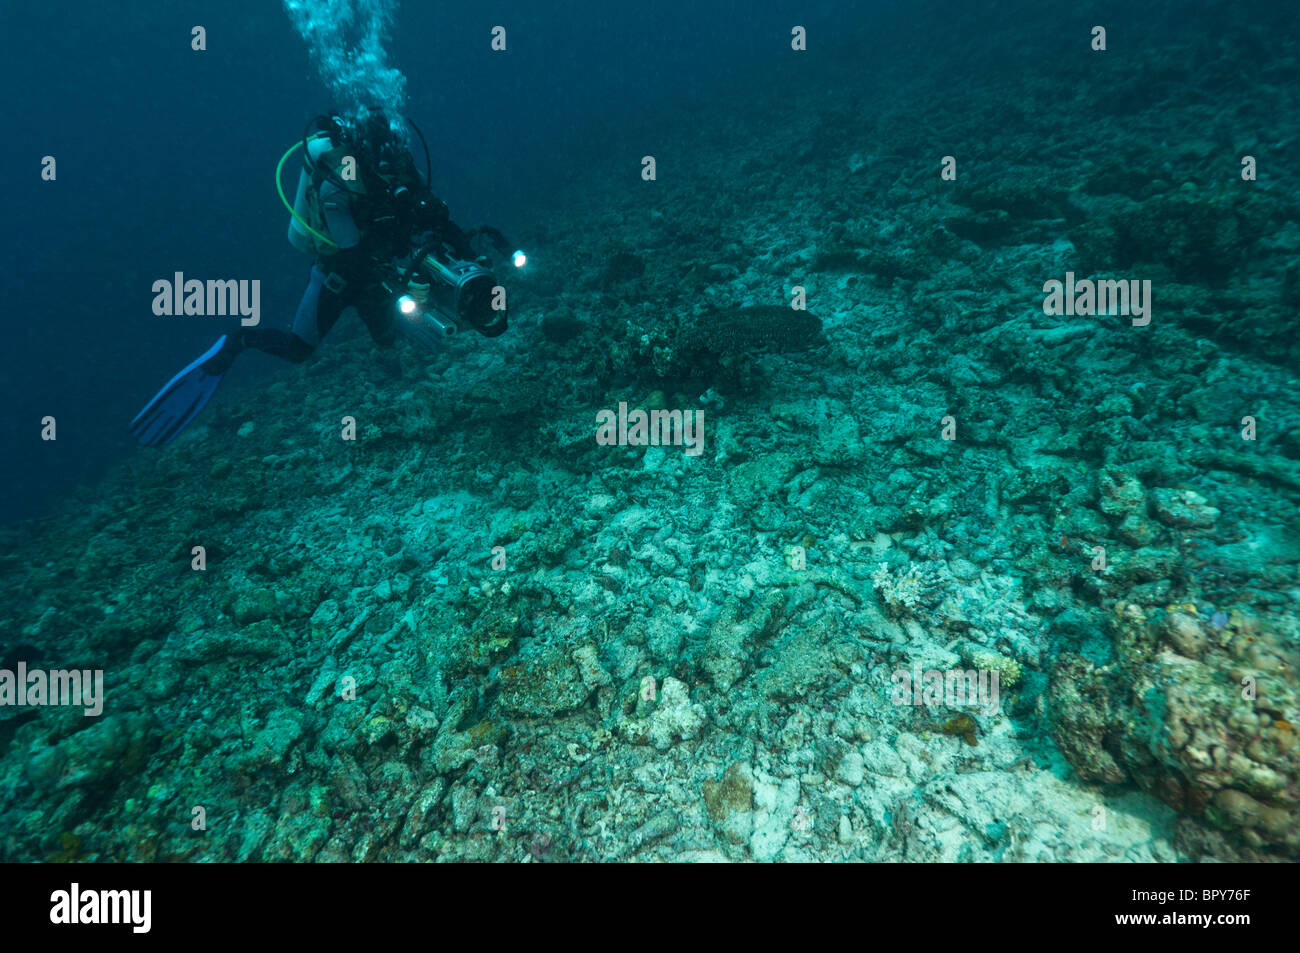 Diver with a video camera filming a reef destroyed by fish bombing, a destructive fishing practice, Biak, West Papua, - Stock Image